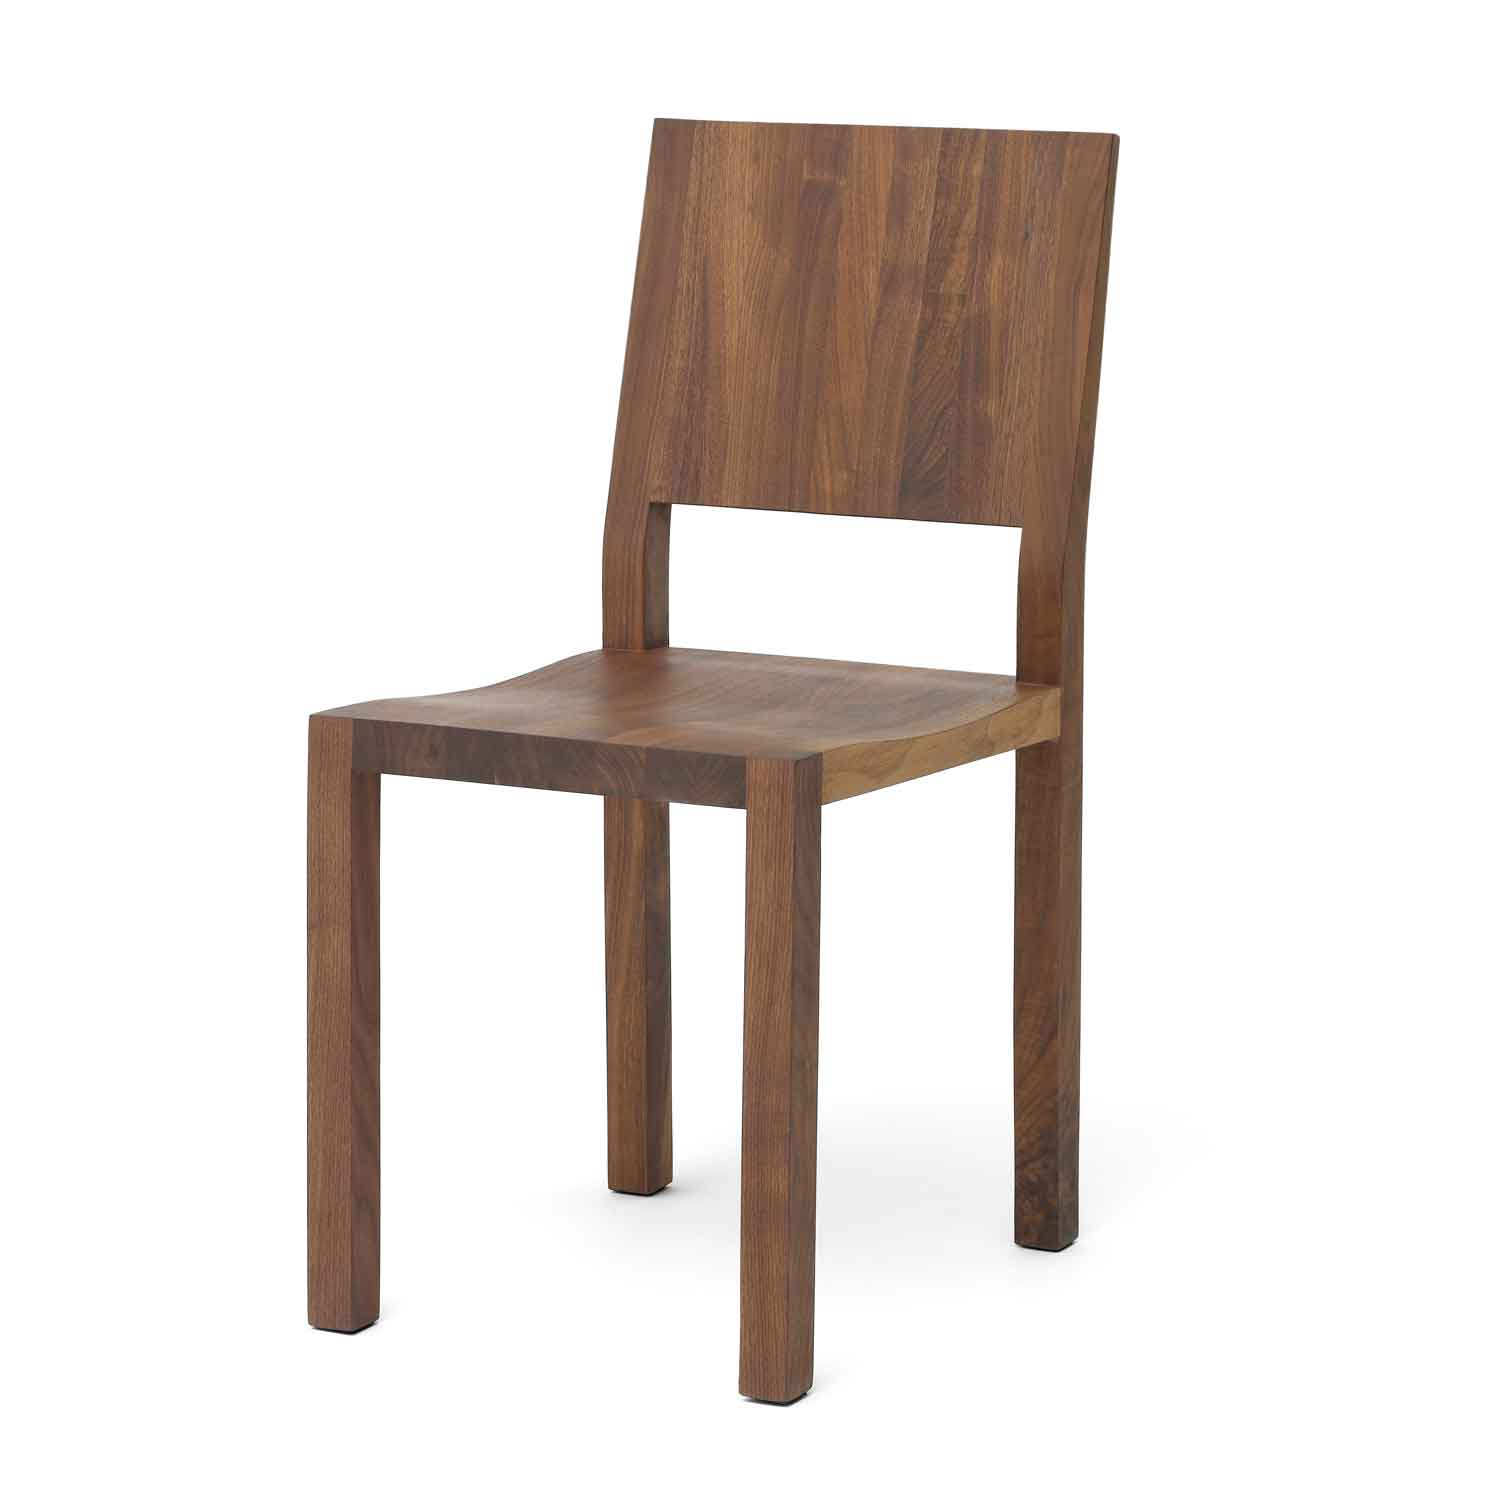 IGO dining chair